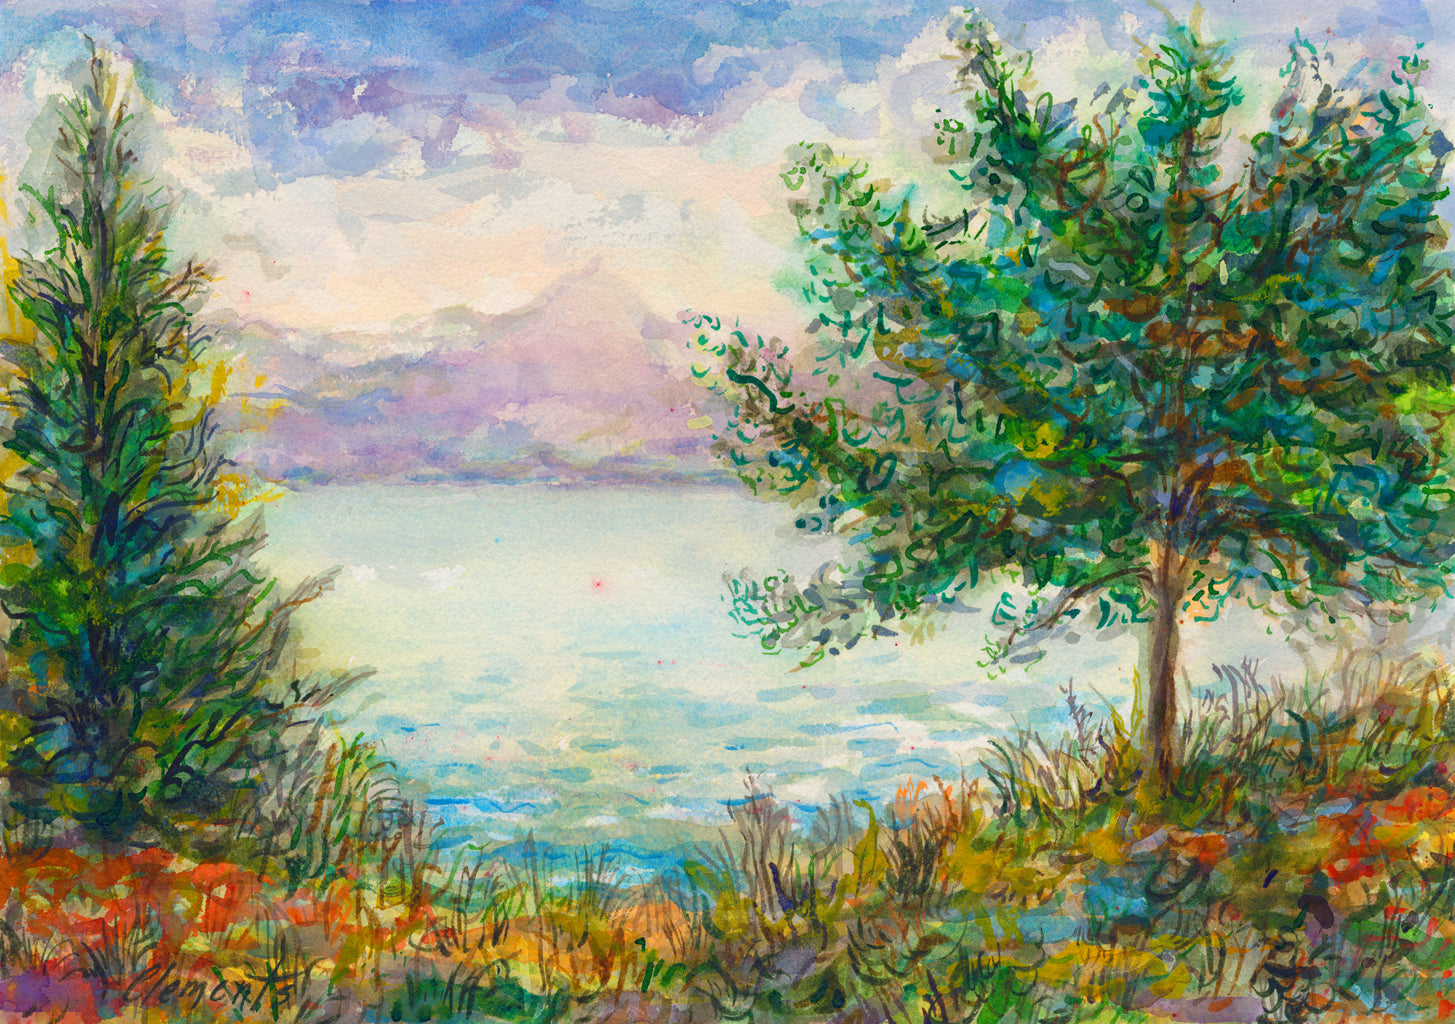 Colorful Whimsical Mountain Lake Painting Giclée Print